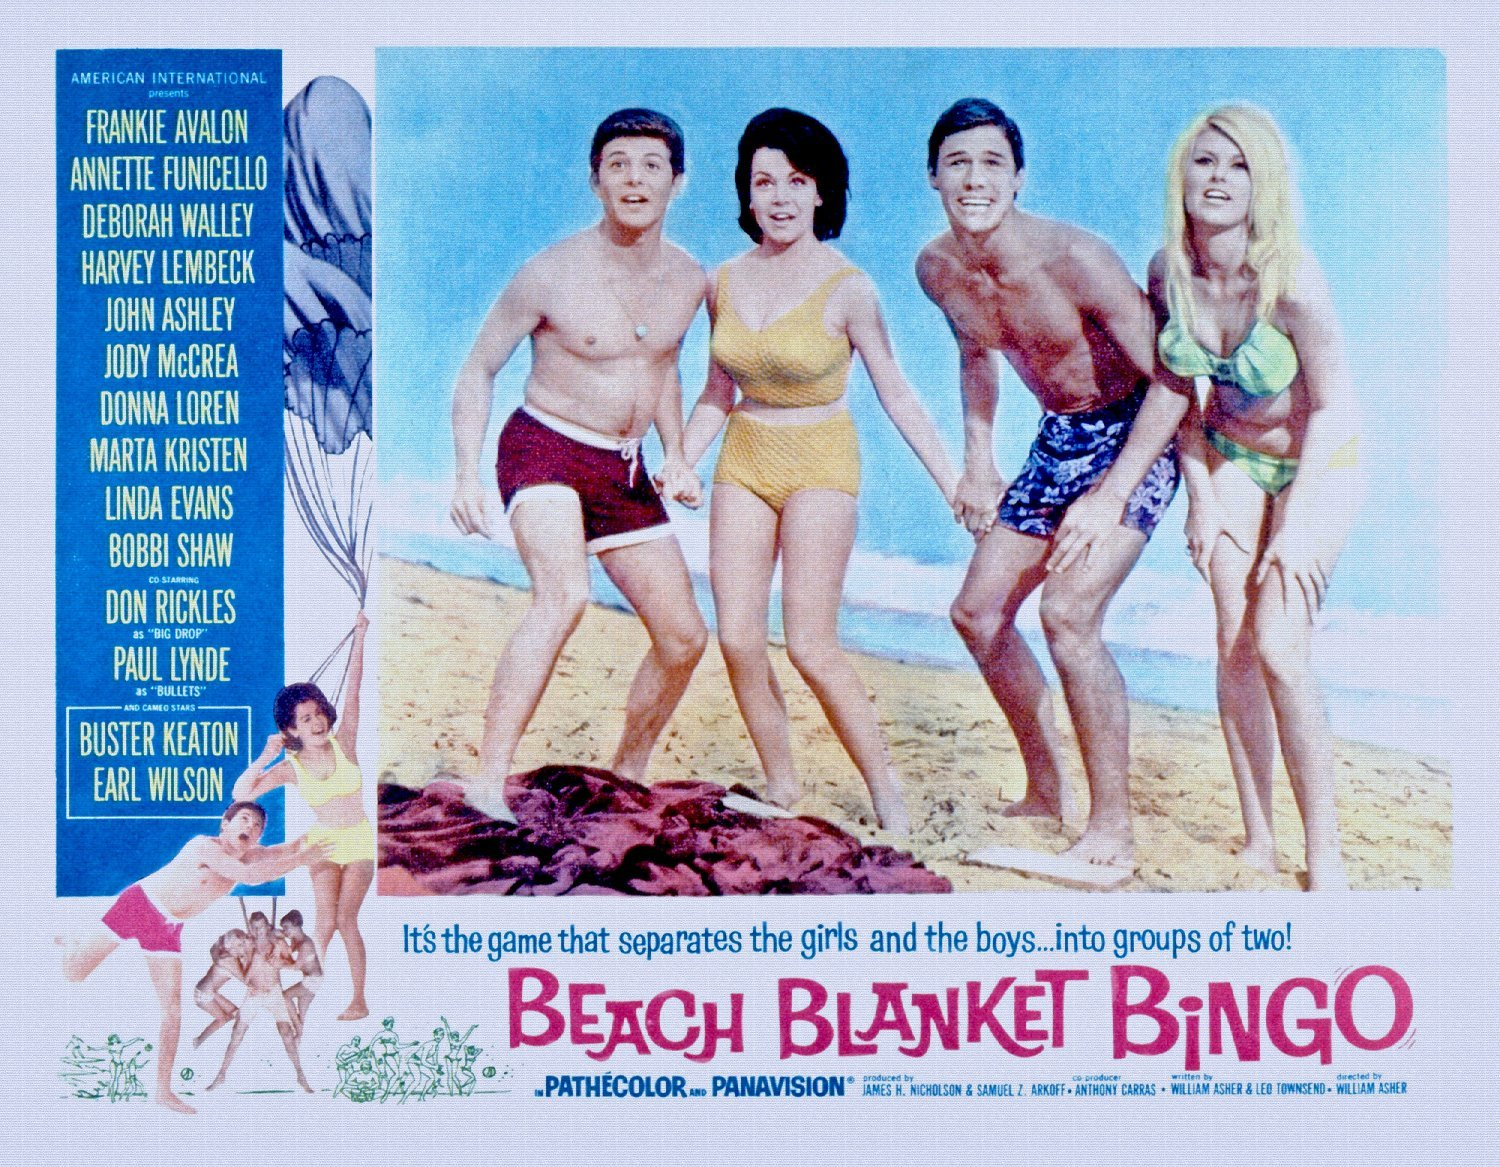 Odsan Gallery Beach Blanket Bingo, Frankie Avalon, Annette Funicello, Mike Nader, 1965 - Premium Movie Poster Reprint 36'' by 28'' Unframed